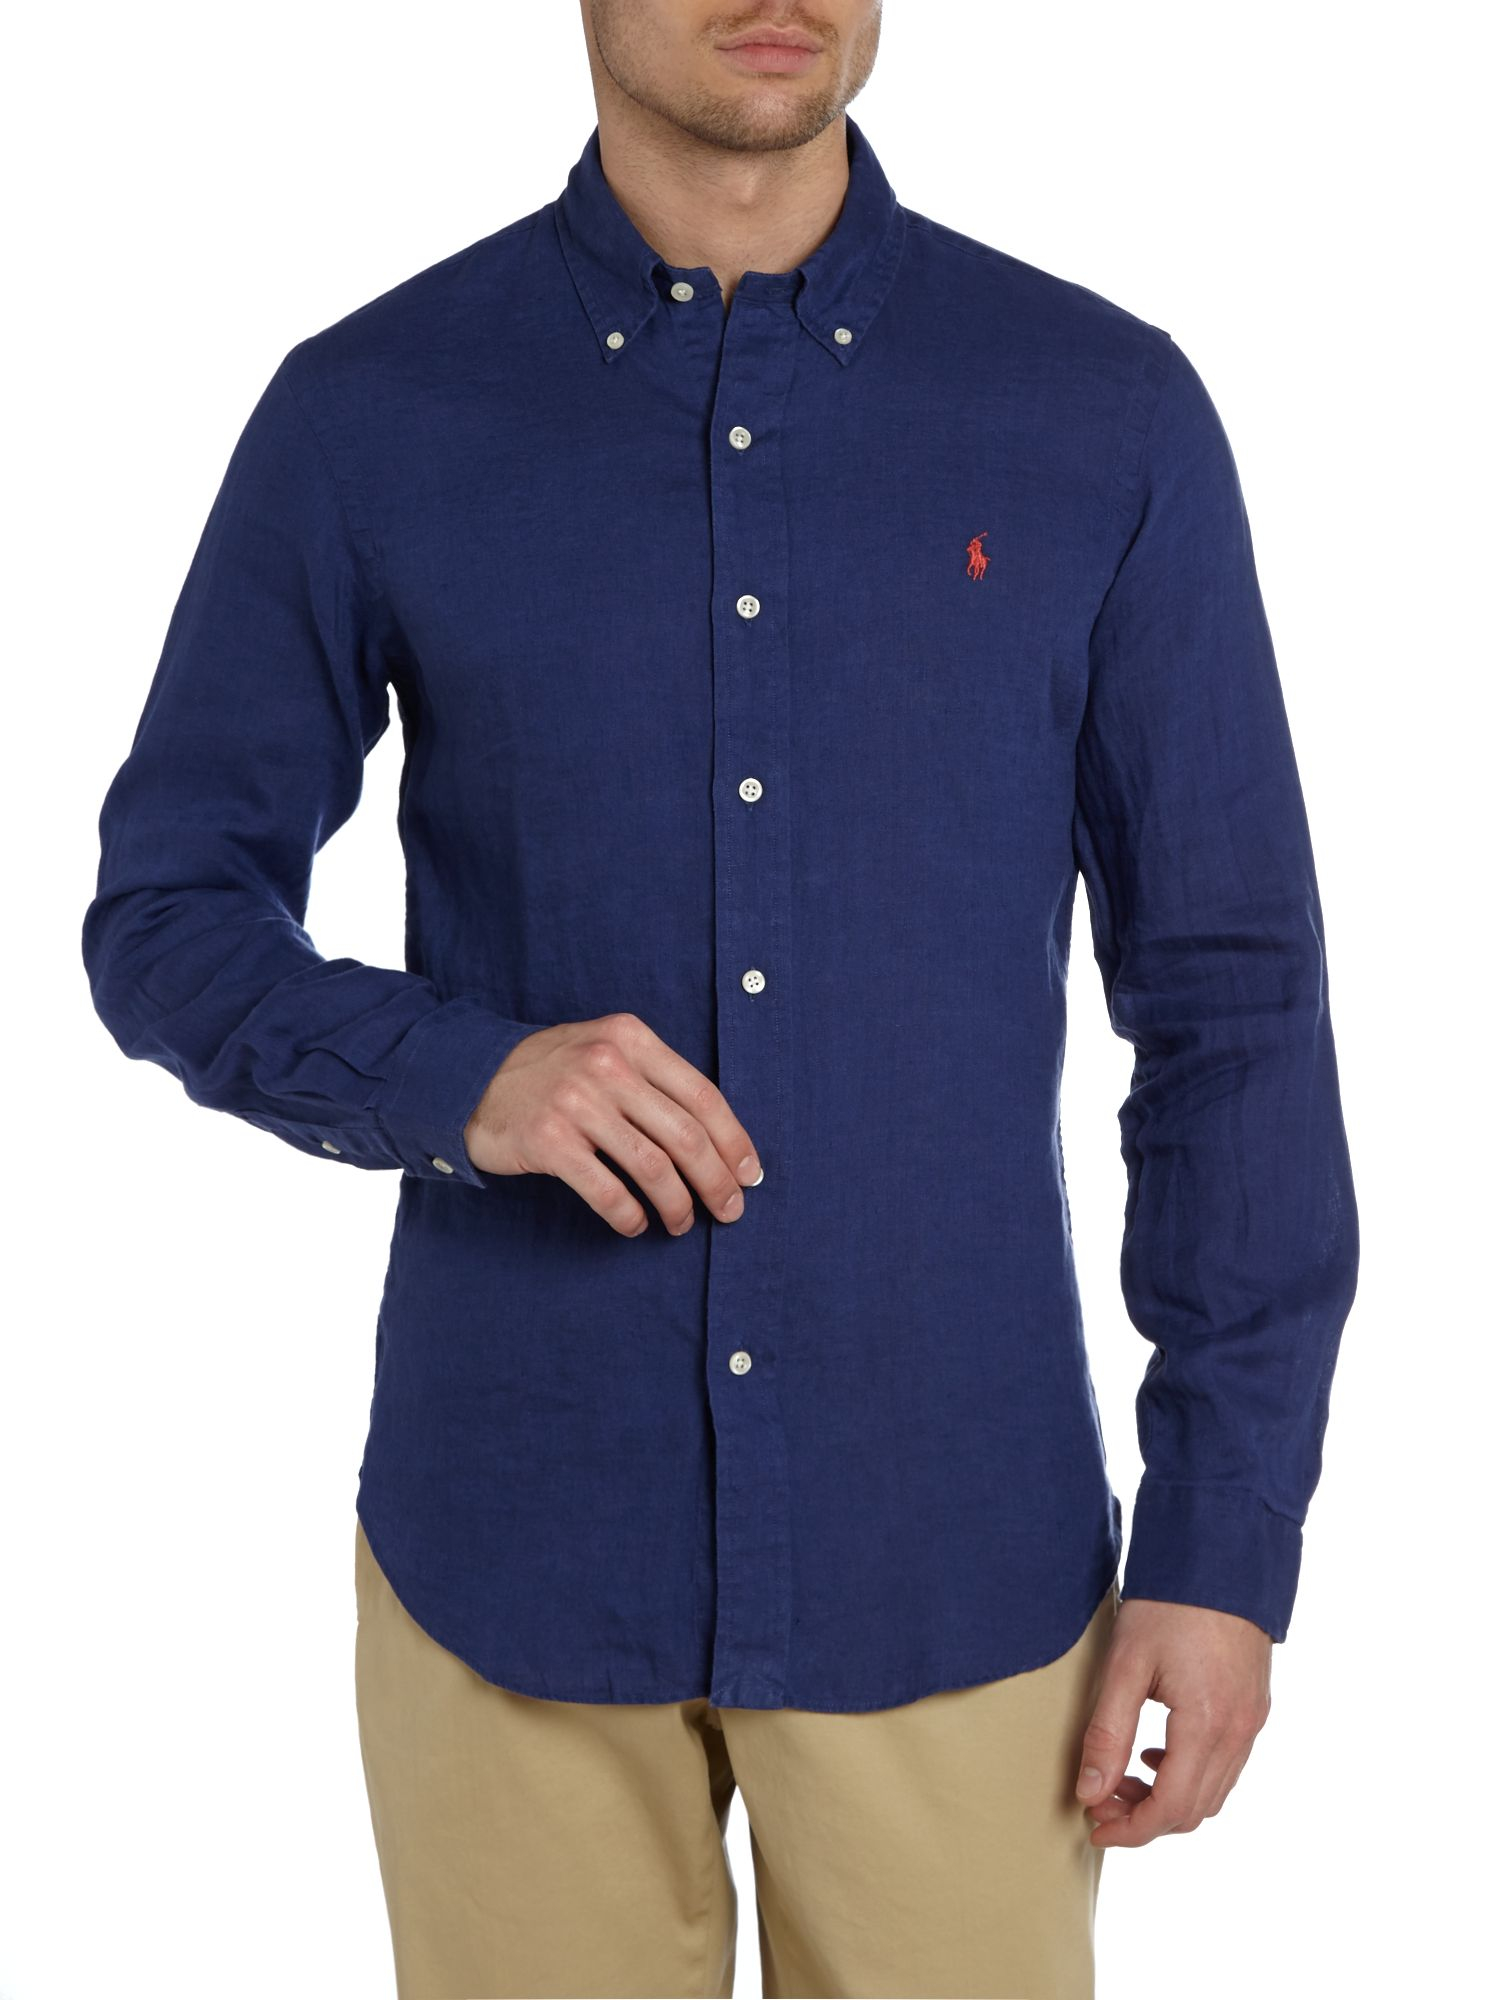 polo ralph lauren ralph lauren slim fit linen shirt in blue for men lyst. Black Bedroom Furniture Sets. Home Design Ideas